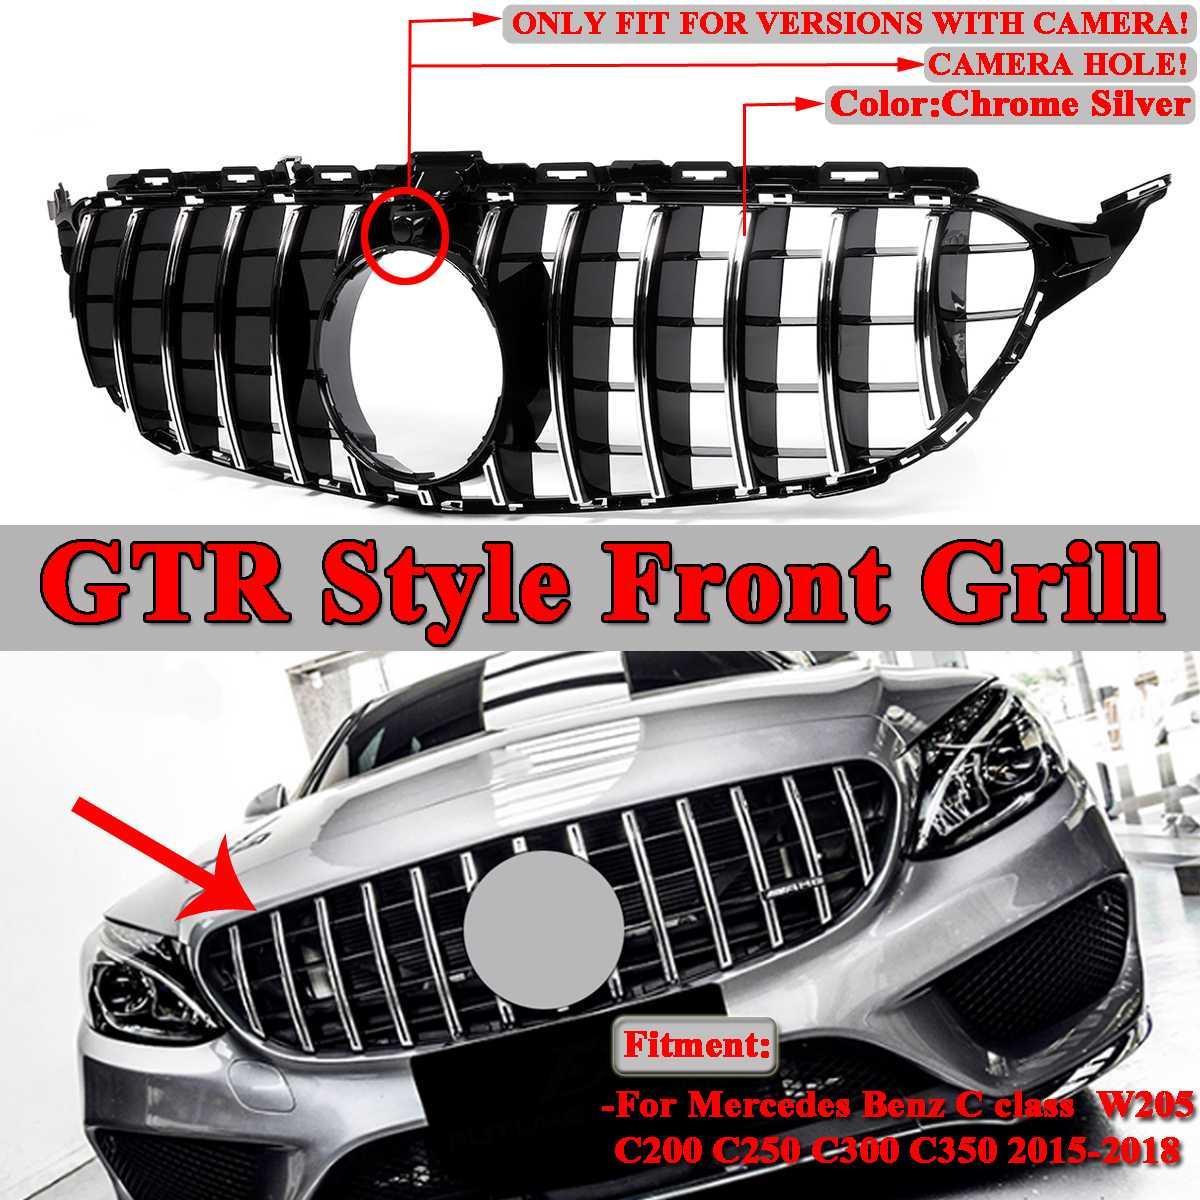 W205 GTR GT R Style Car Front Grill Grille Black/Chrome Silver For Mercedes For Benz W205 C200 C250 C300 C350 2015-2018 2Dr/4Dr